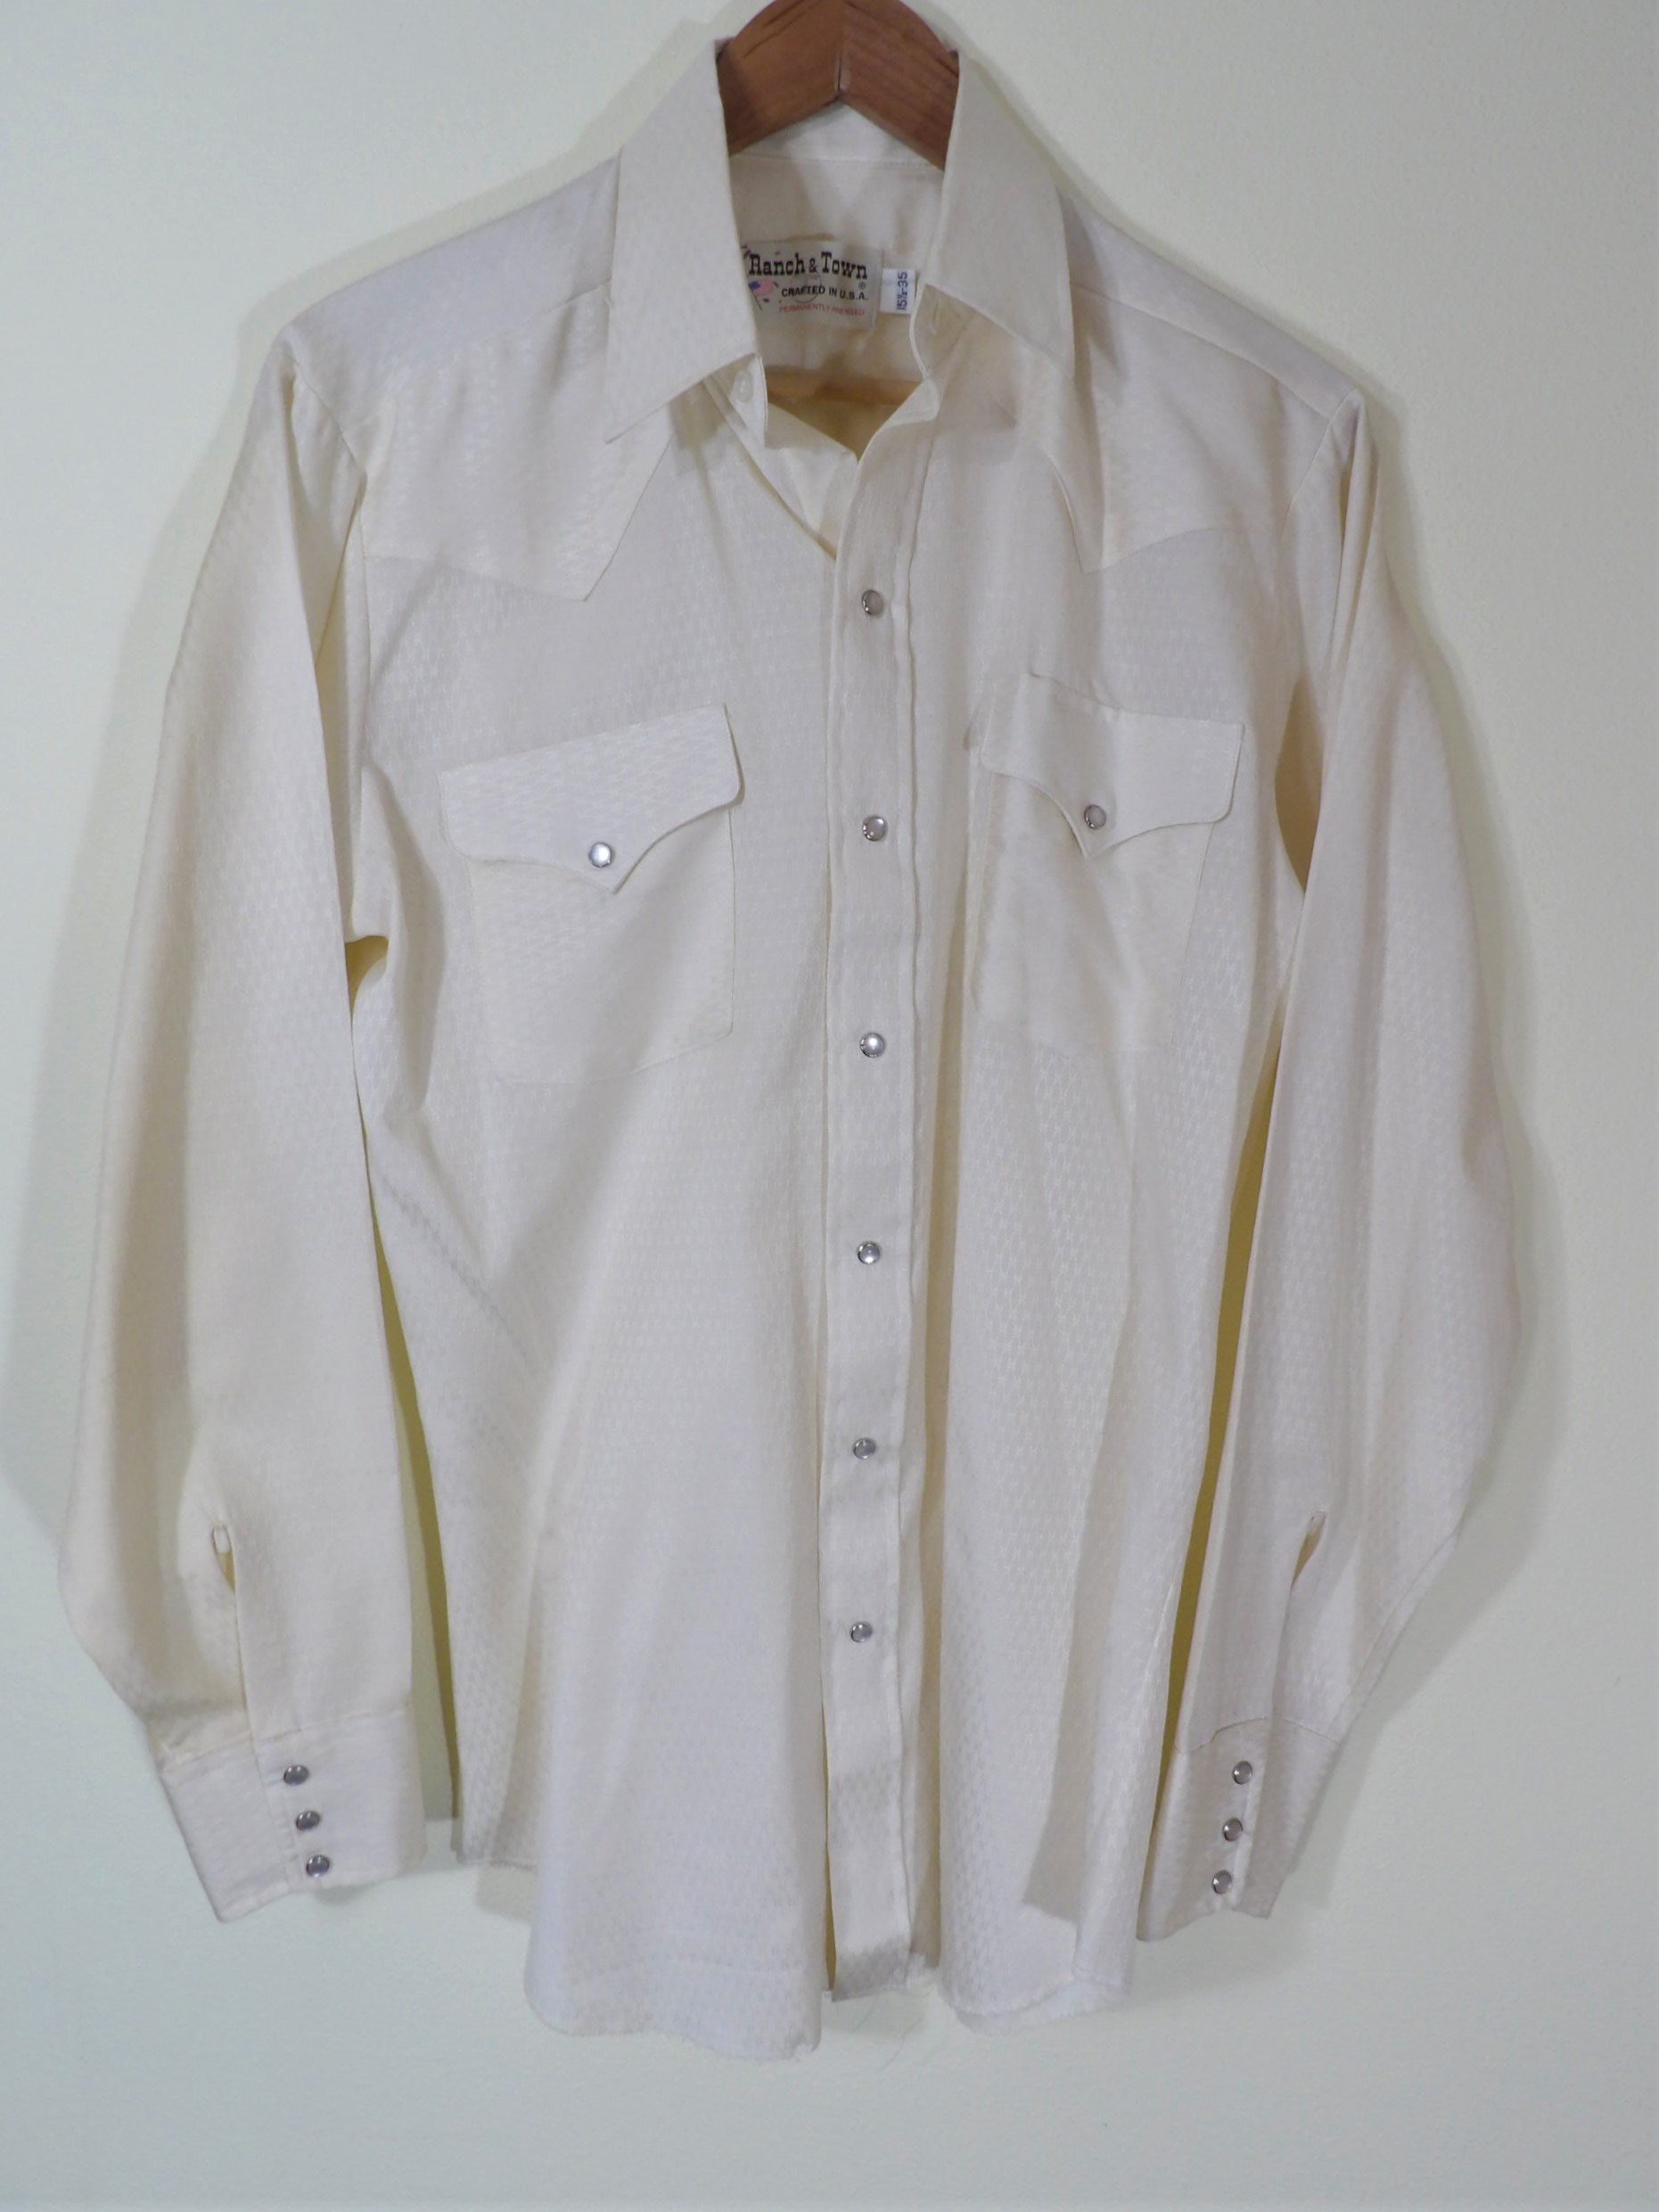 1970s Mens Shirt Styles – Vintage 70s Shirts for Guys 1970s Ranch  Town Cream PolyCotton Textured Weaved Western Pearl Snap Shirt Mens Chest 42 Made in Usa $0.00 AT vintagedancer.com